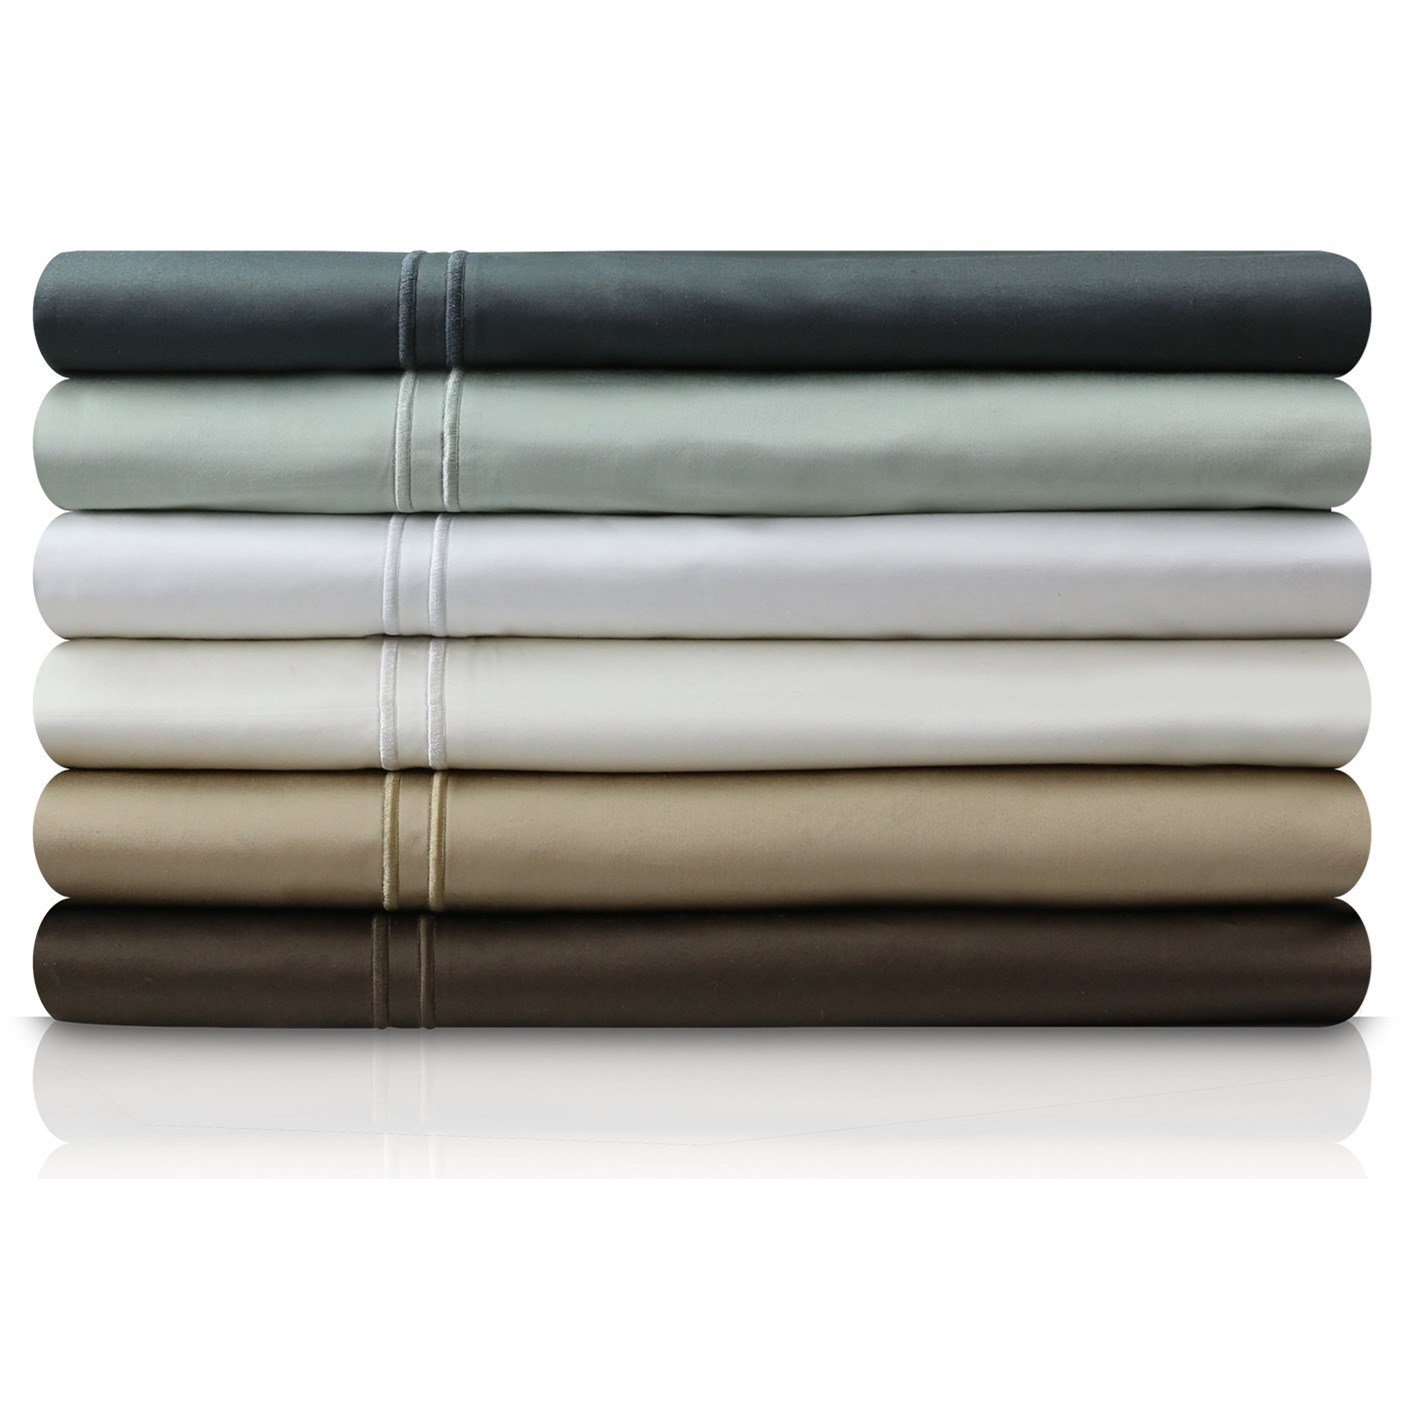 Malouf Egyptian Cotton Split Cal King 600 TC Egyptian Cotton Sheet  - Item Number: MA06SCSISS